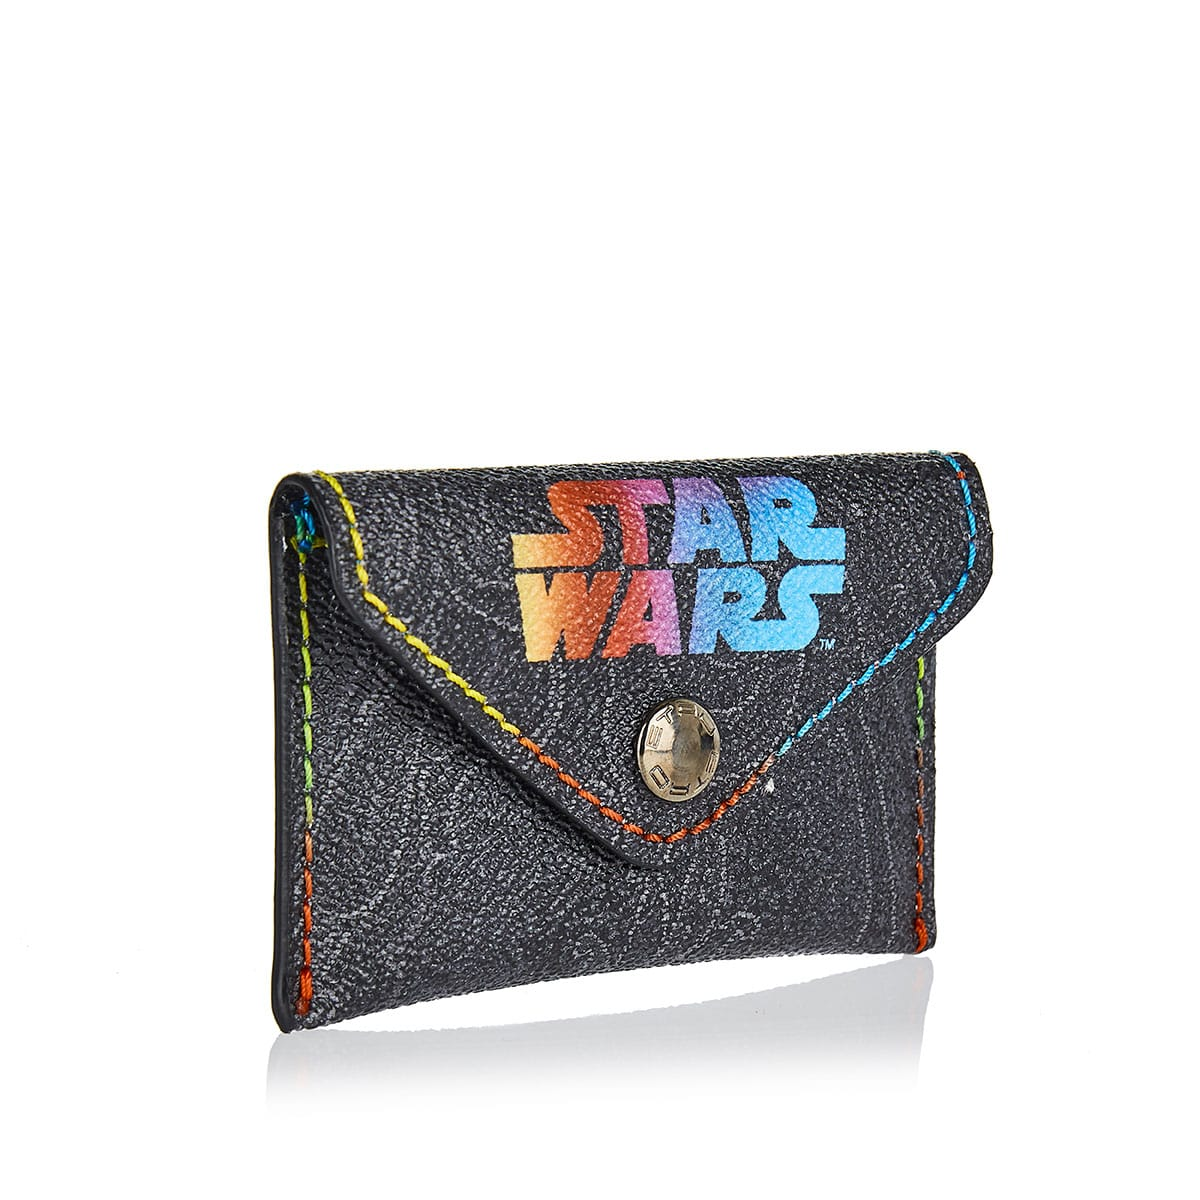 x Star Wars logo card holder